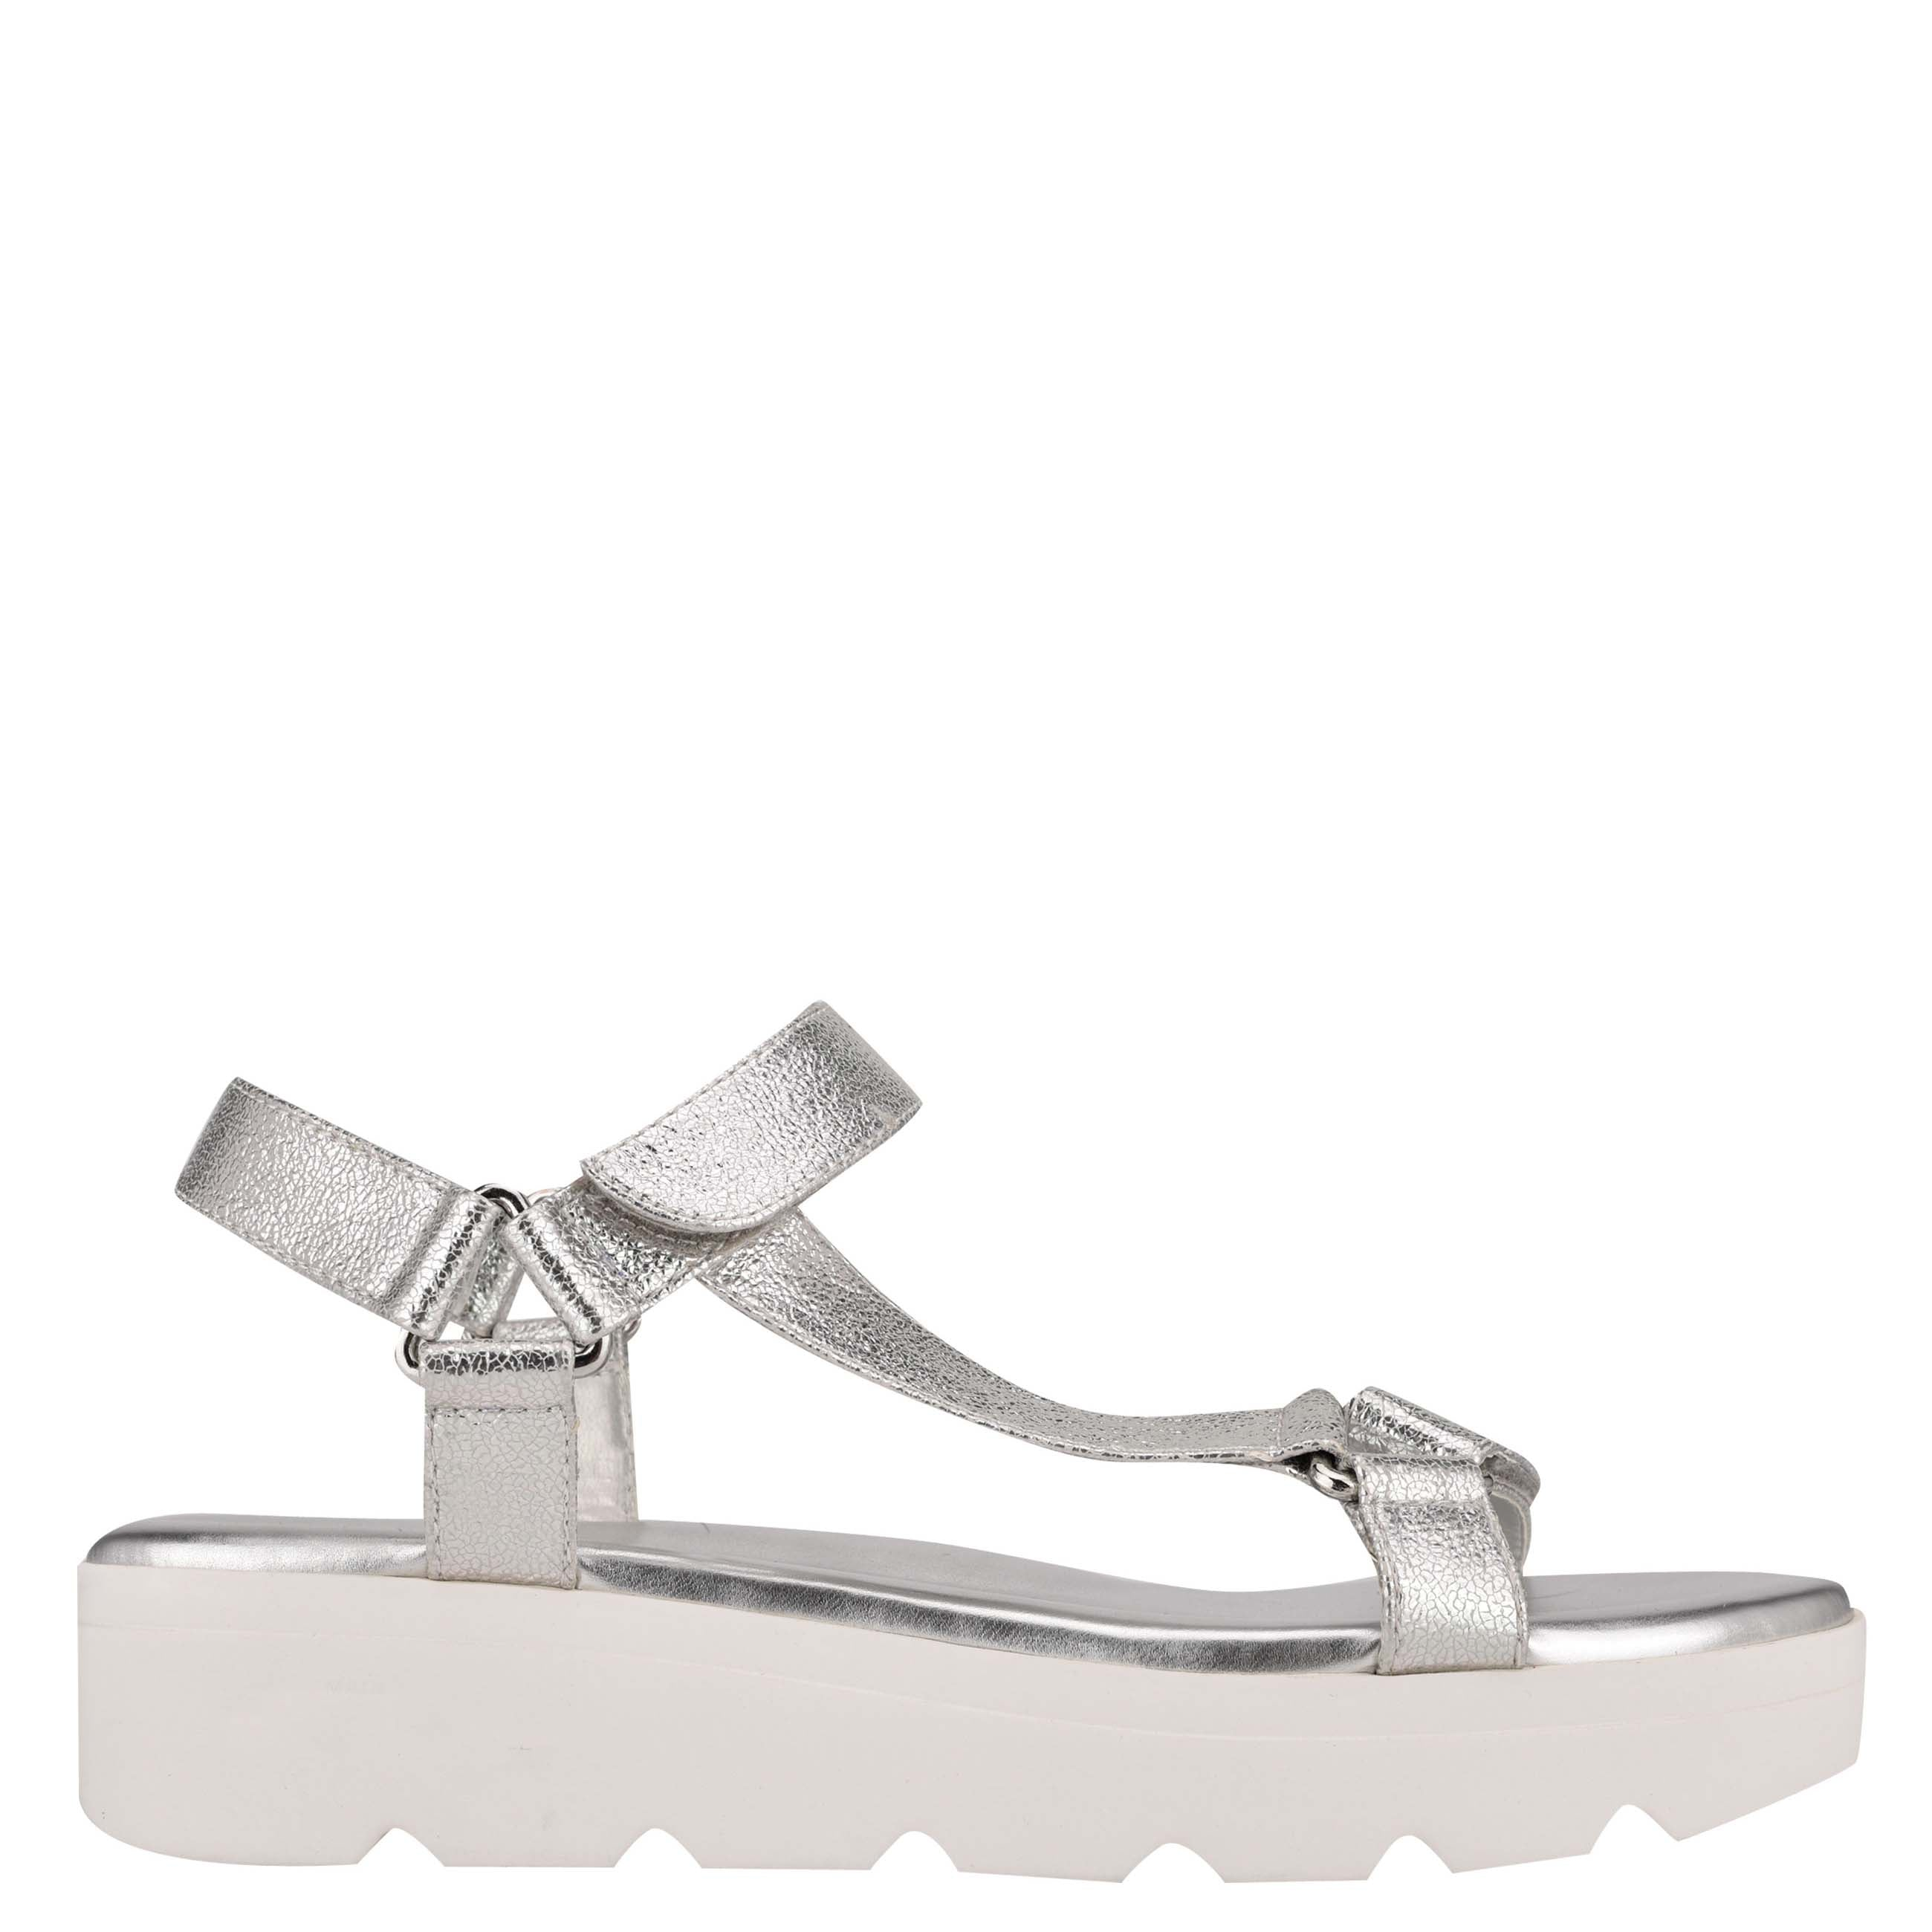 NINEWEST Bringly Flat Sandals